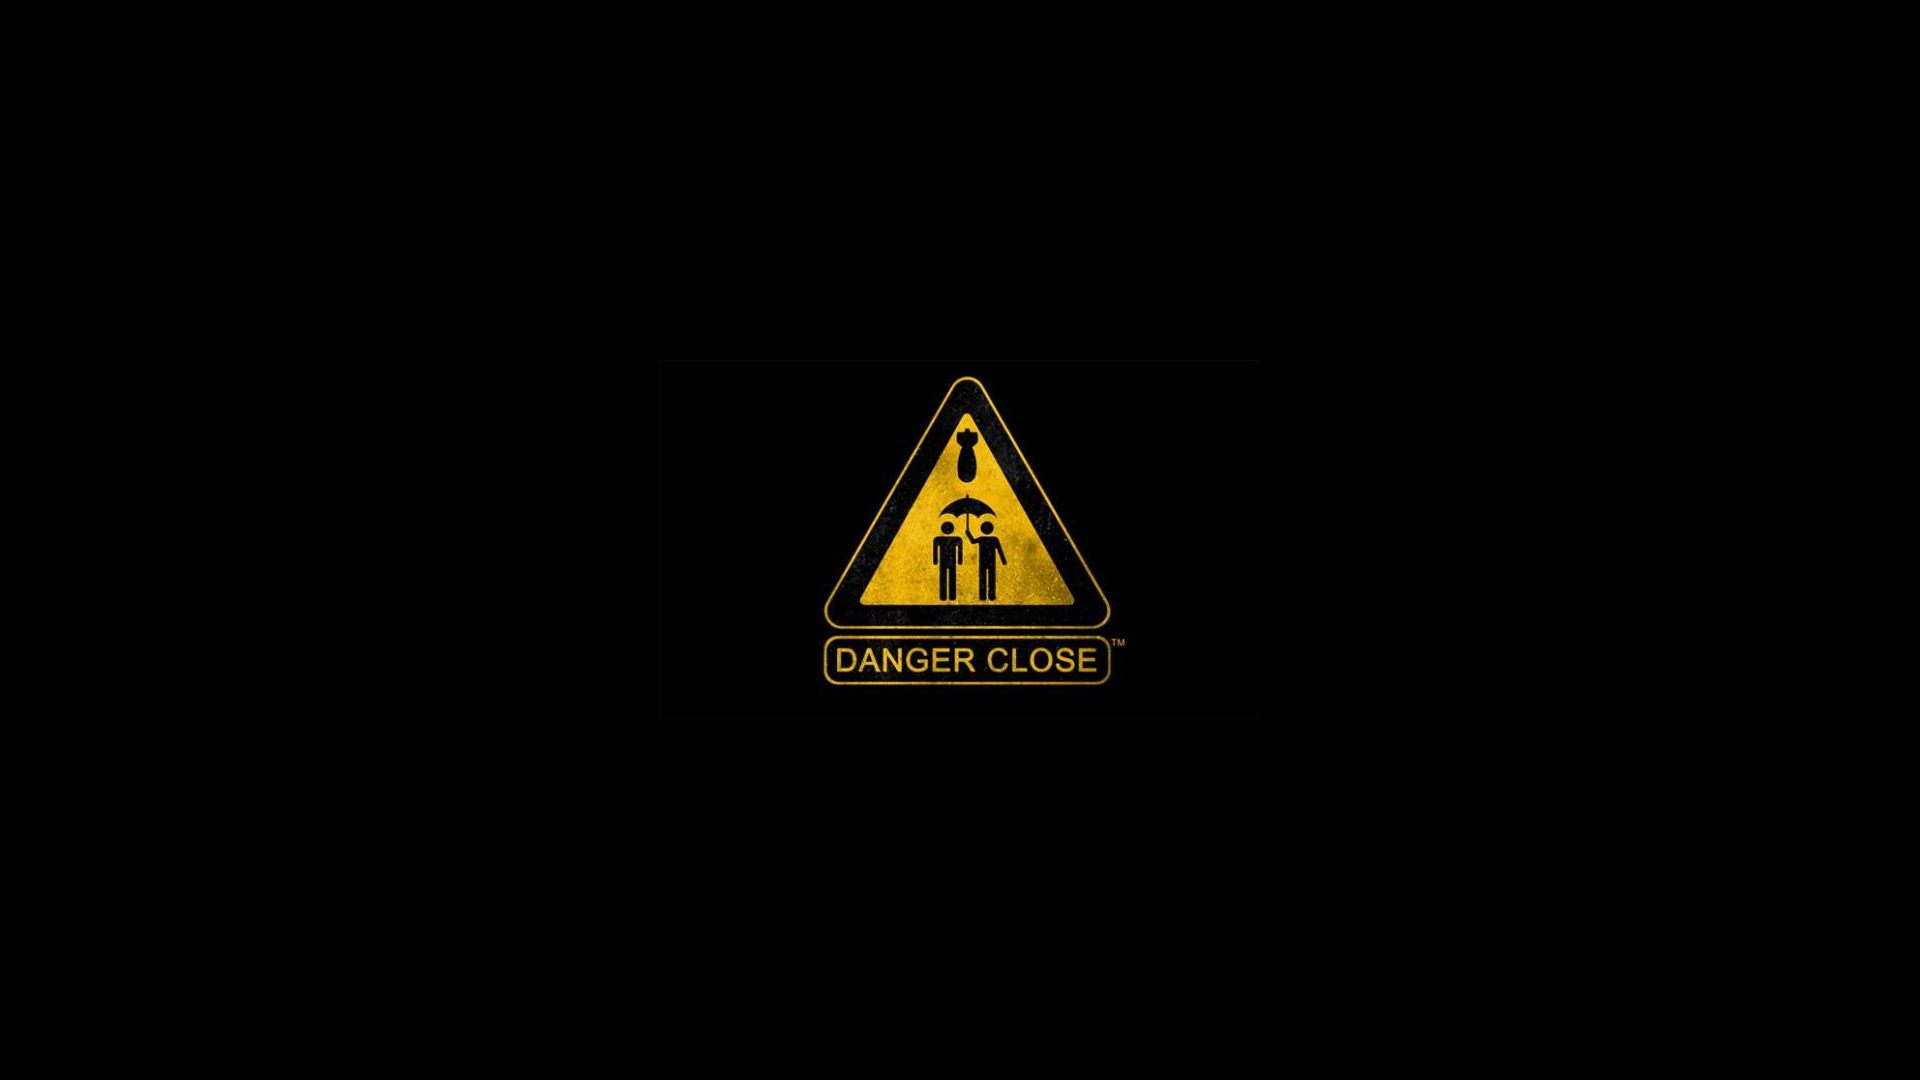 2016 Danger HDQ Wallpapers | BsnSCB Graphics